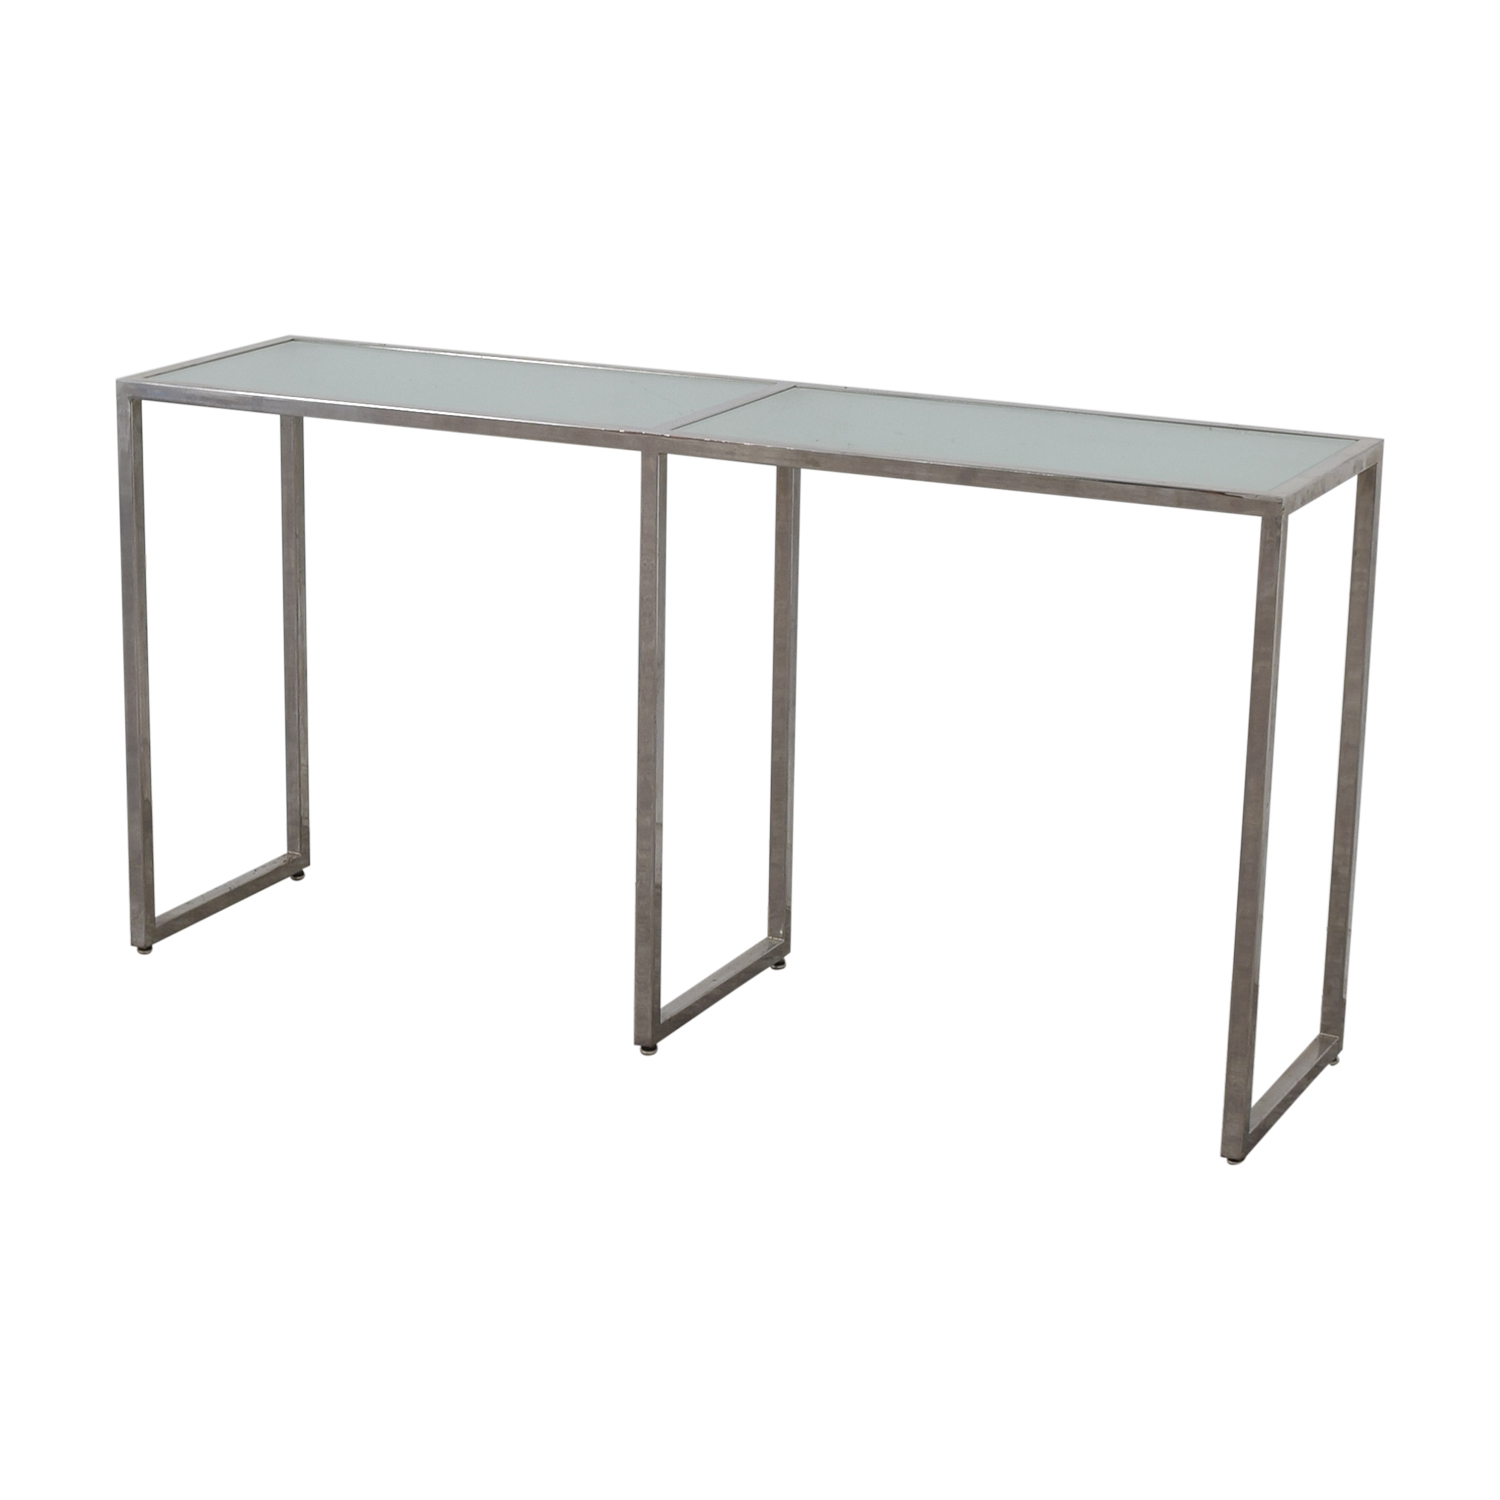 Tr Designs Tinted Gl And Chrome Console Table Accent Tables